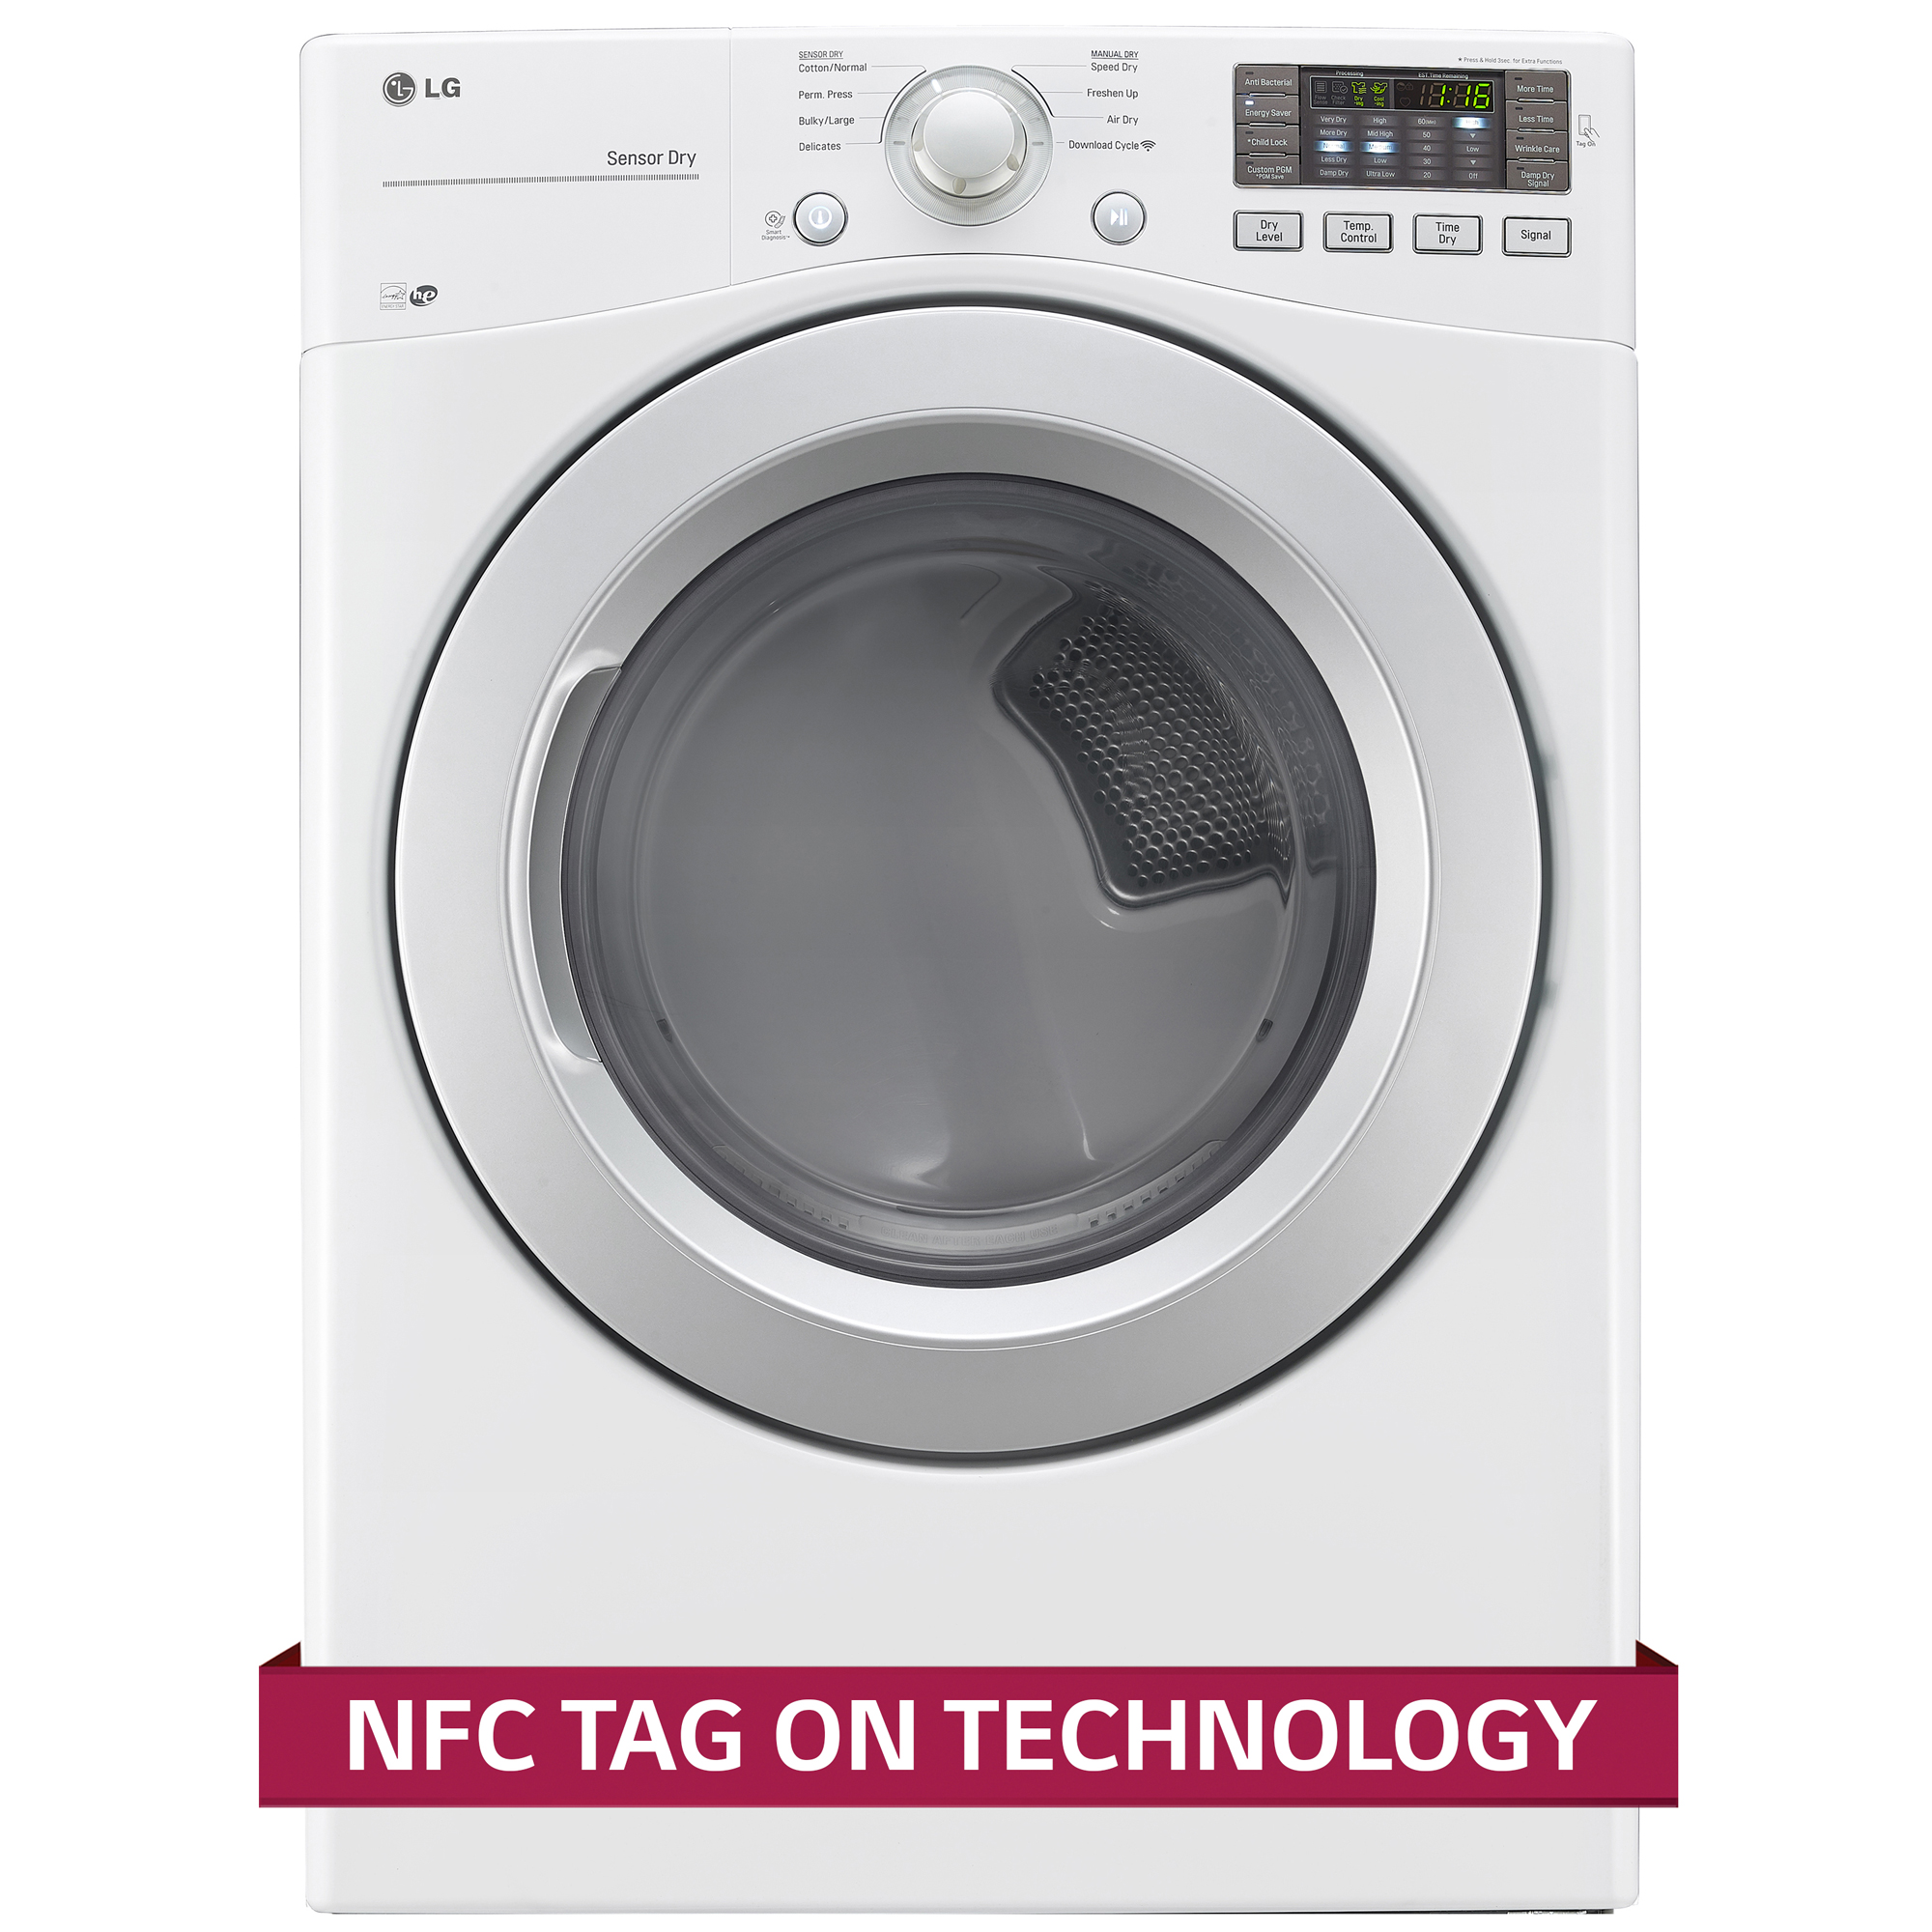 LG DLE3170W 7.4 cu. ft. Capacity Electric Dryer w/ NFC Tag On Technology – White